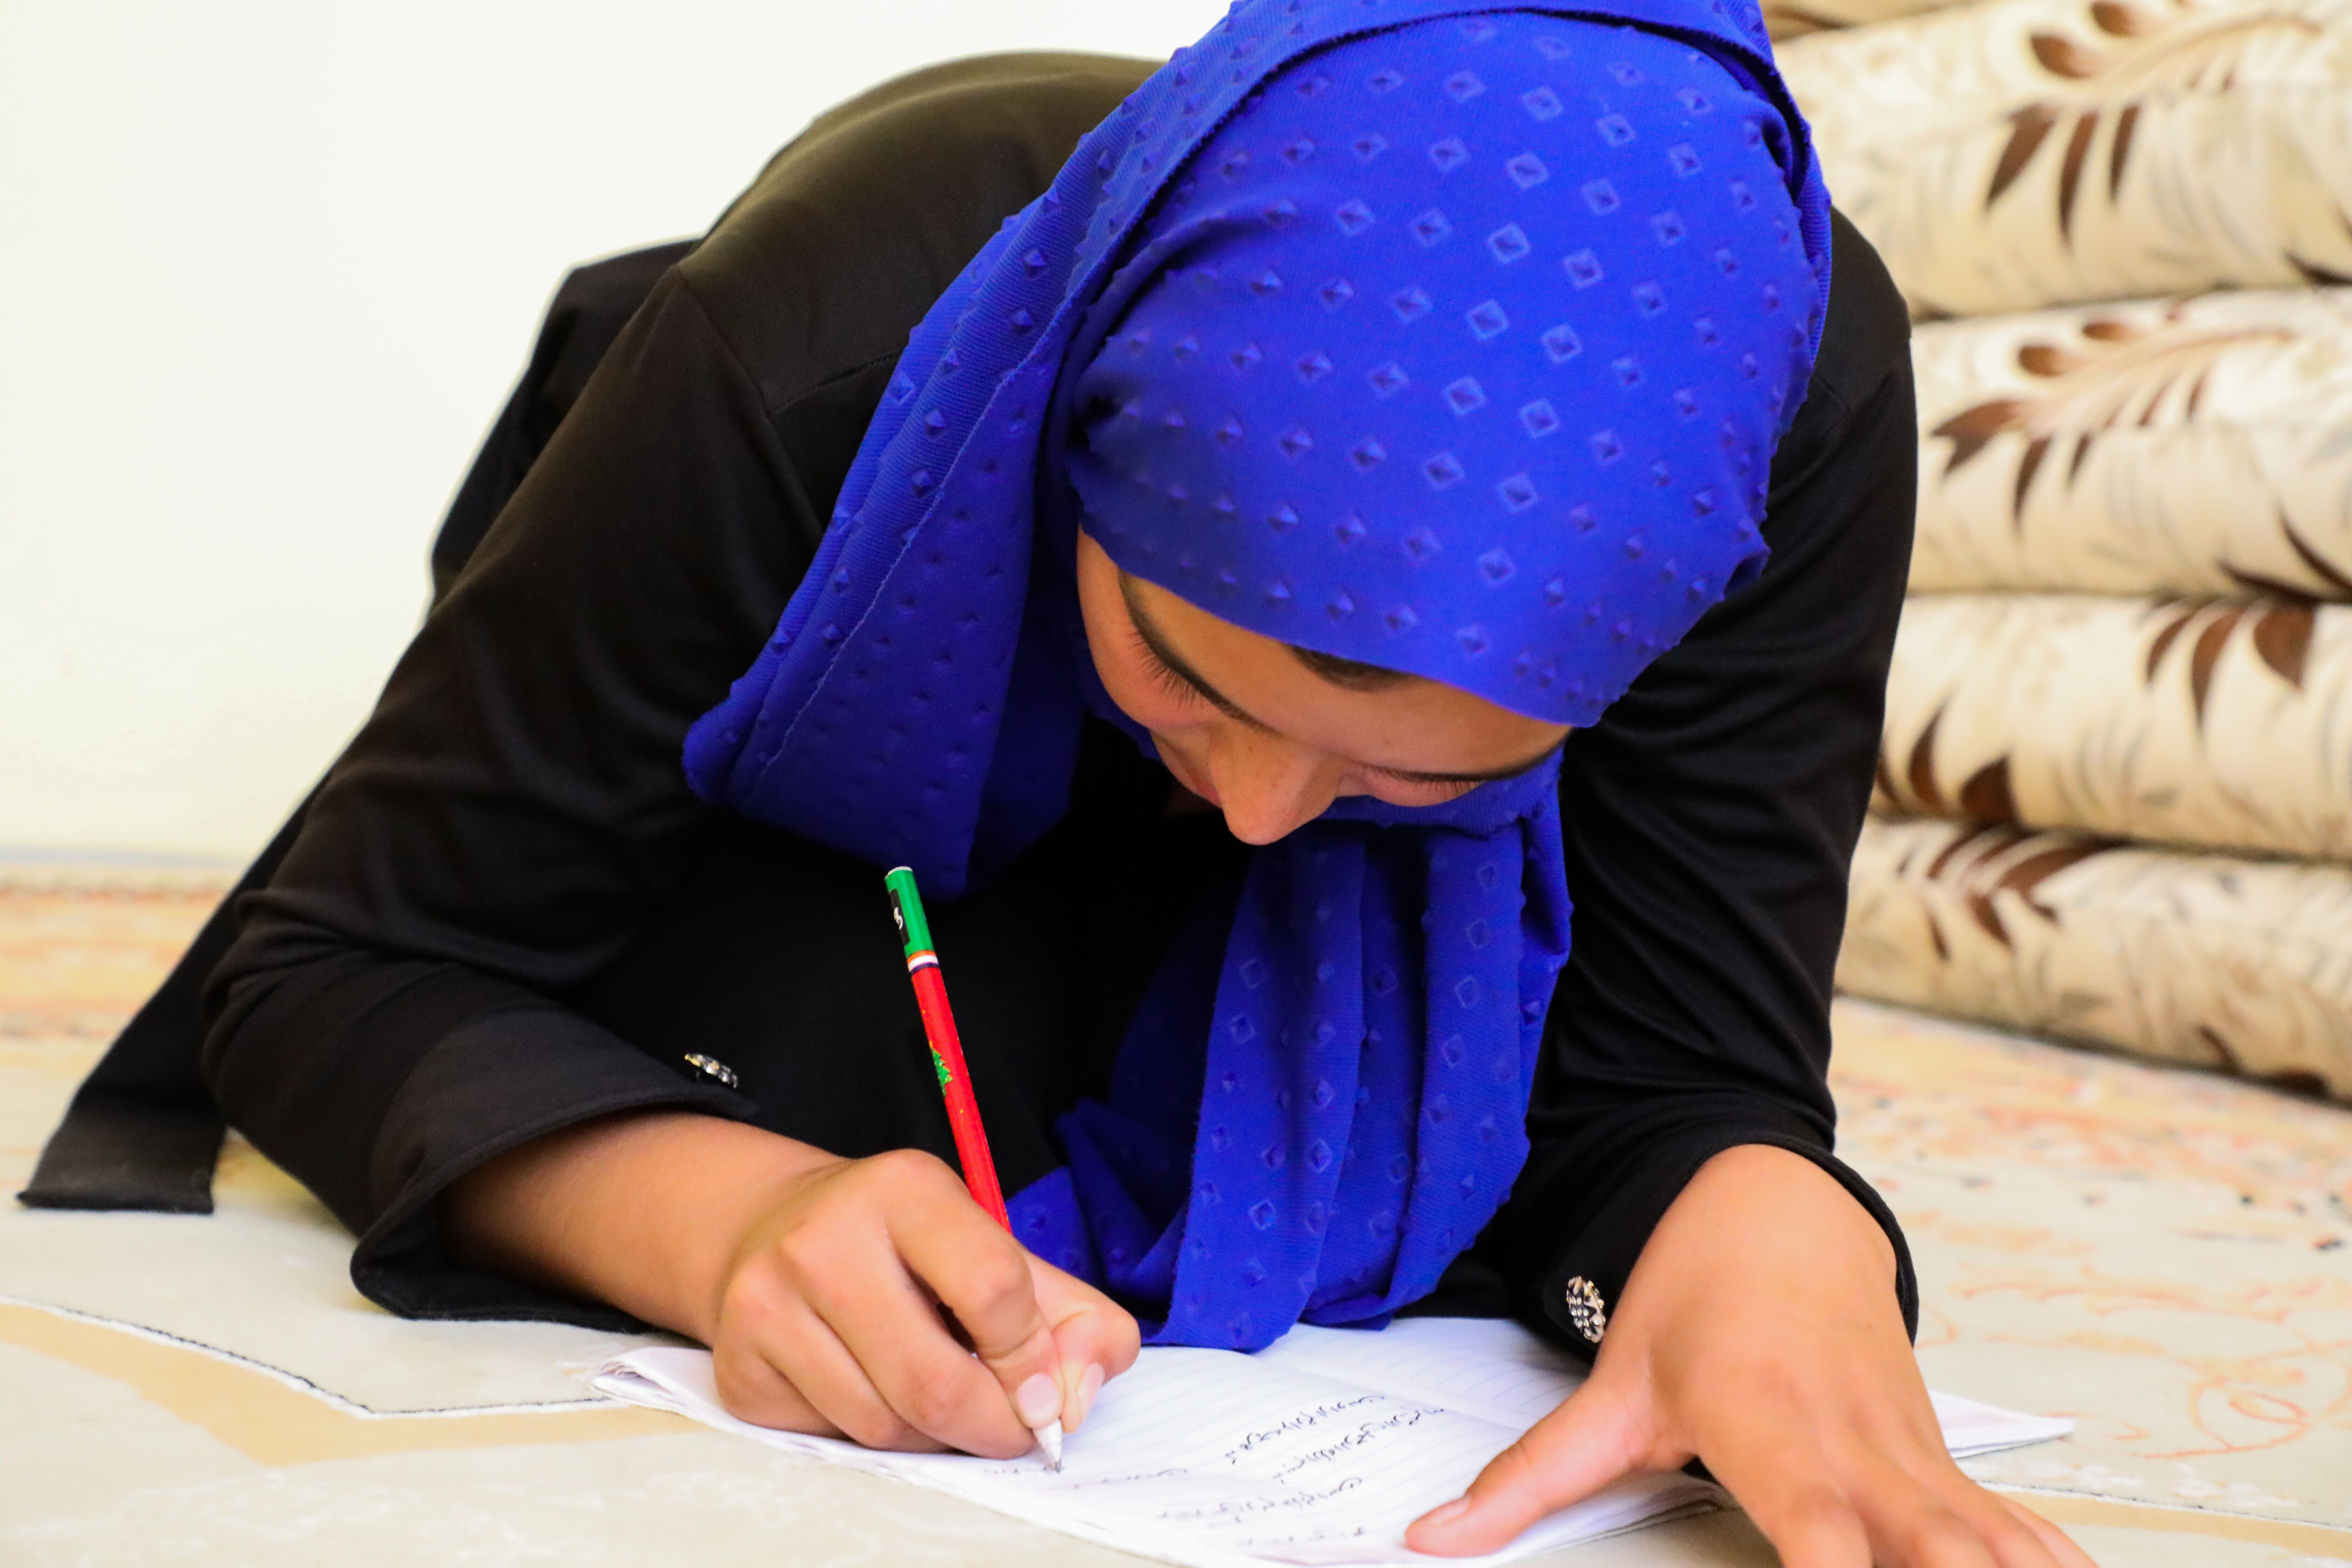 Rahila from Afghanistan writes about her experience of child marriage